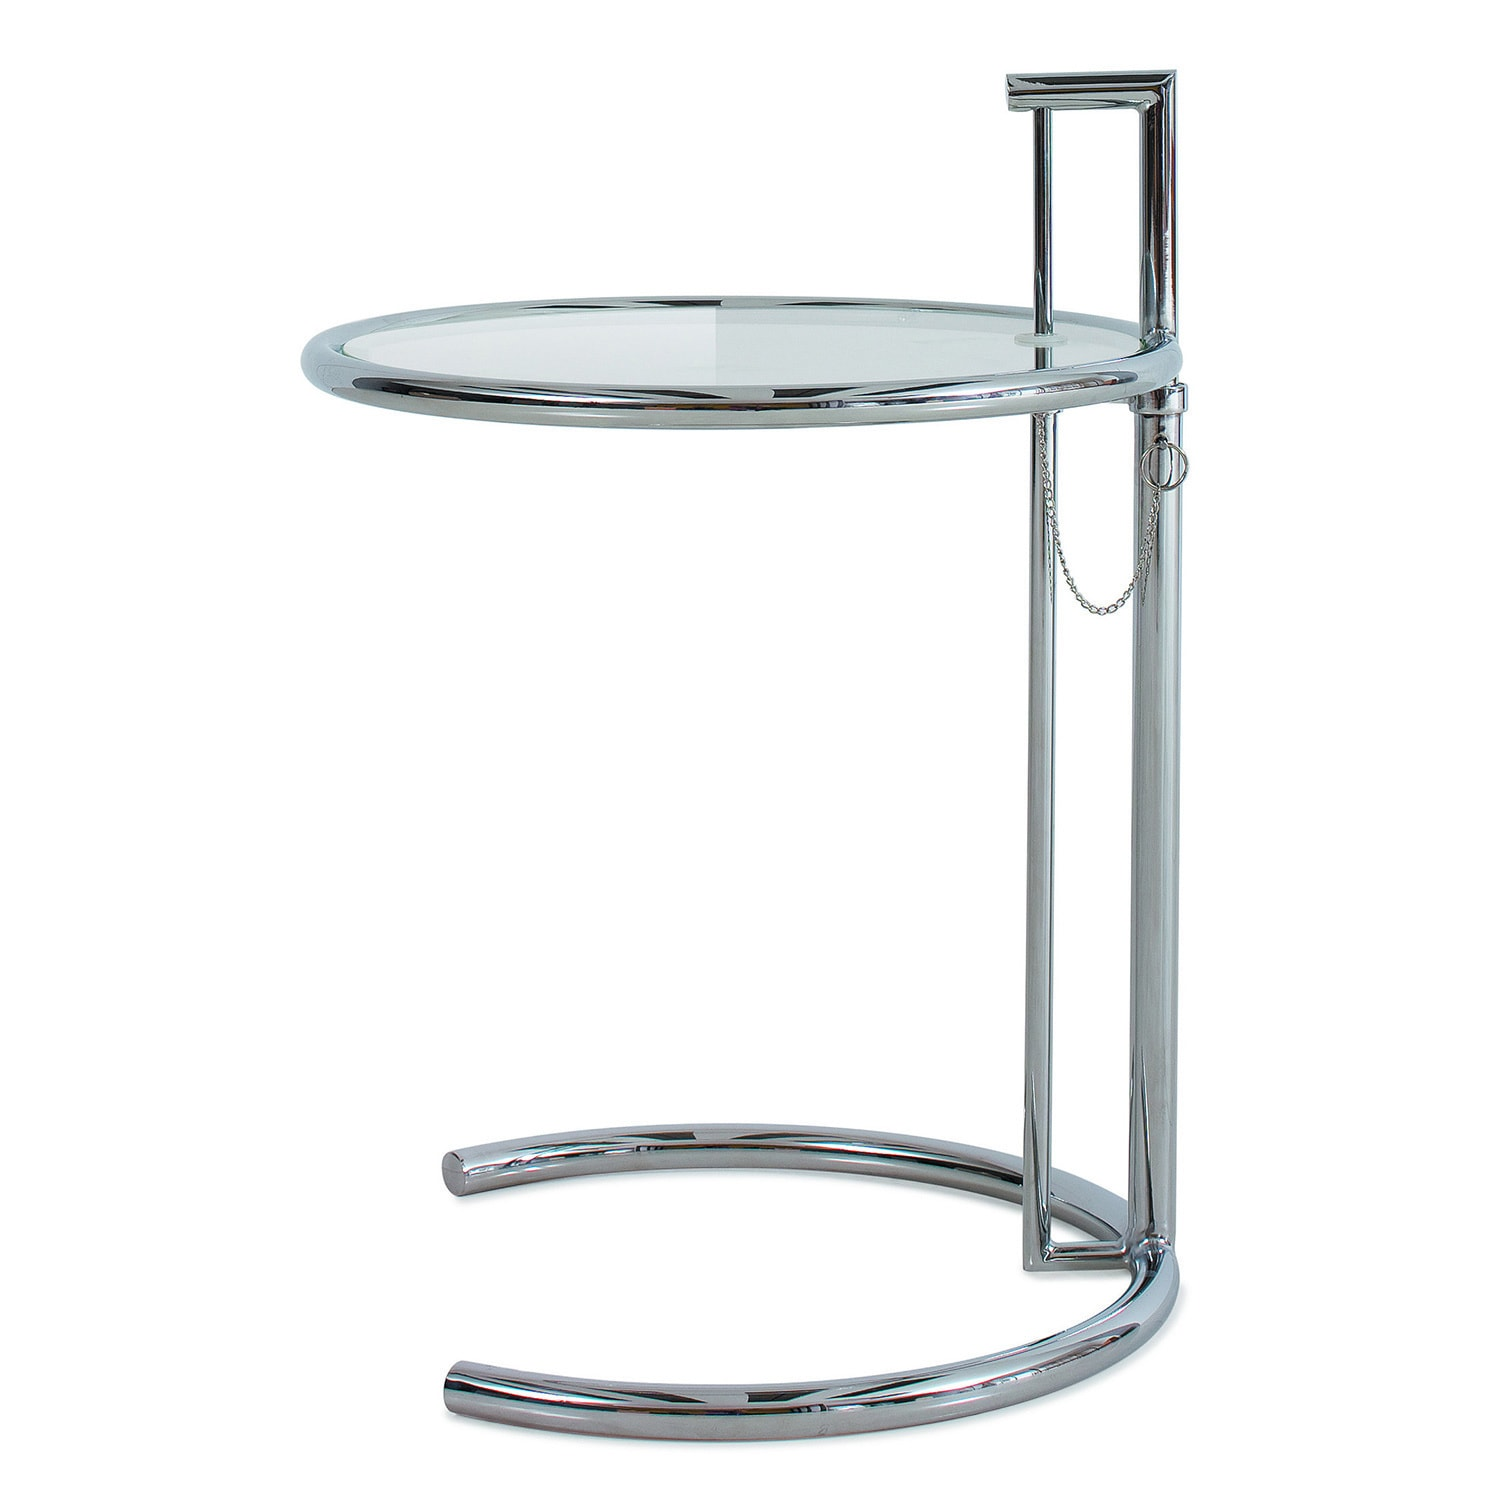 Orion Adjustable Height Side Table Overstock Shopping